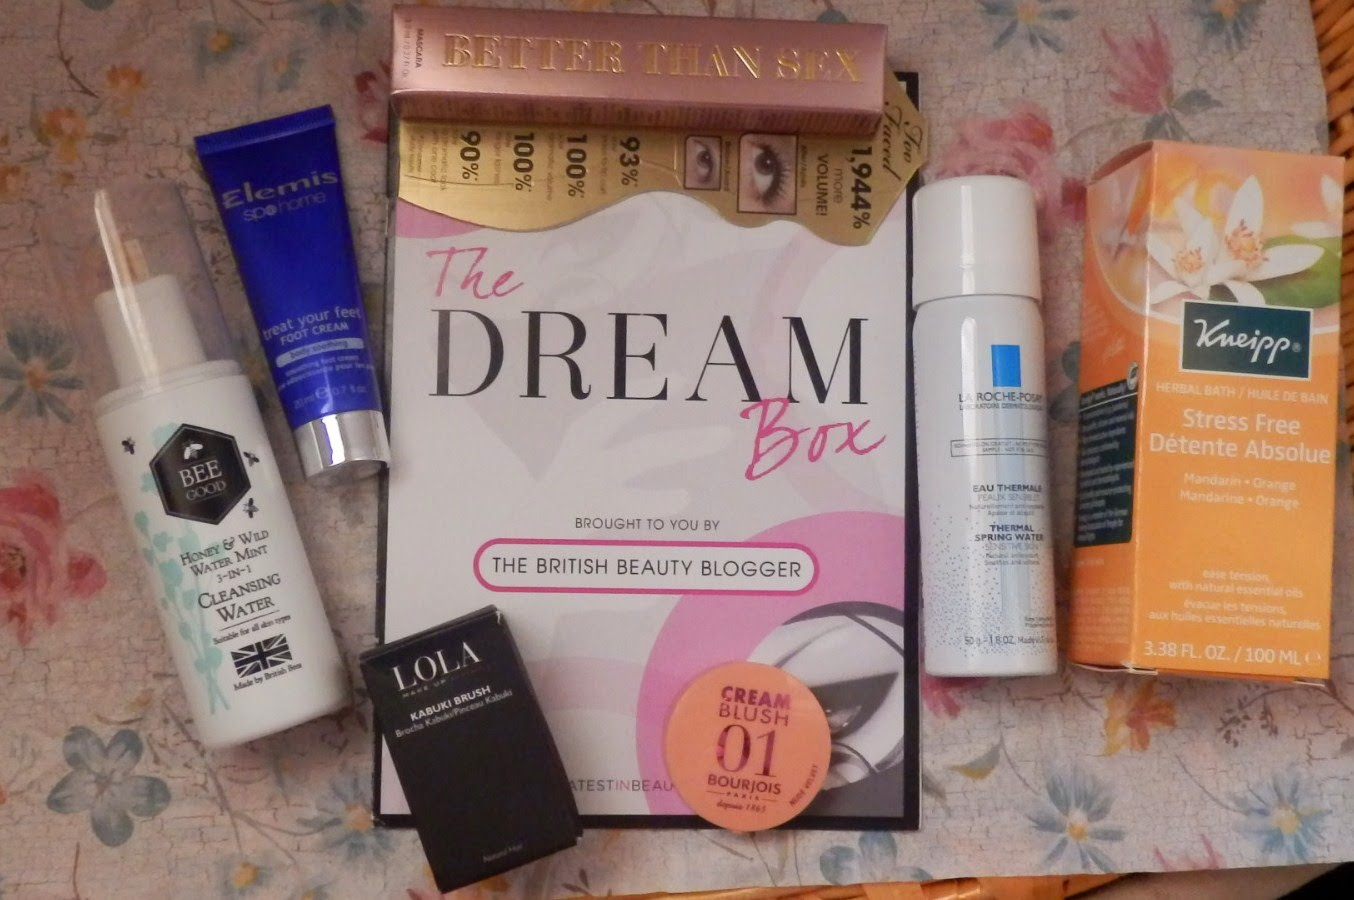 The British Beauty Blogger Dream Box from Latest in Beauty